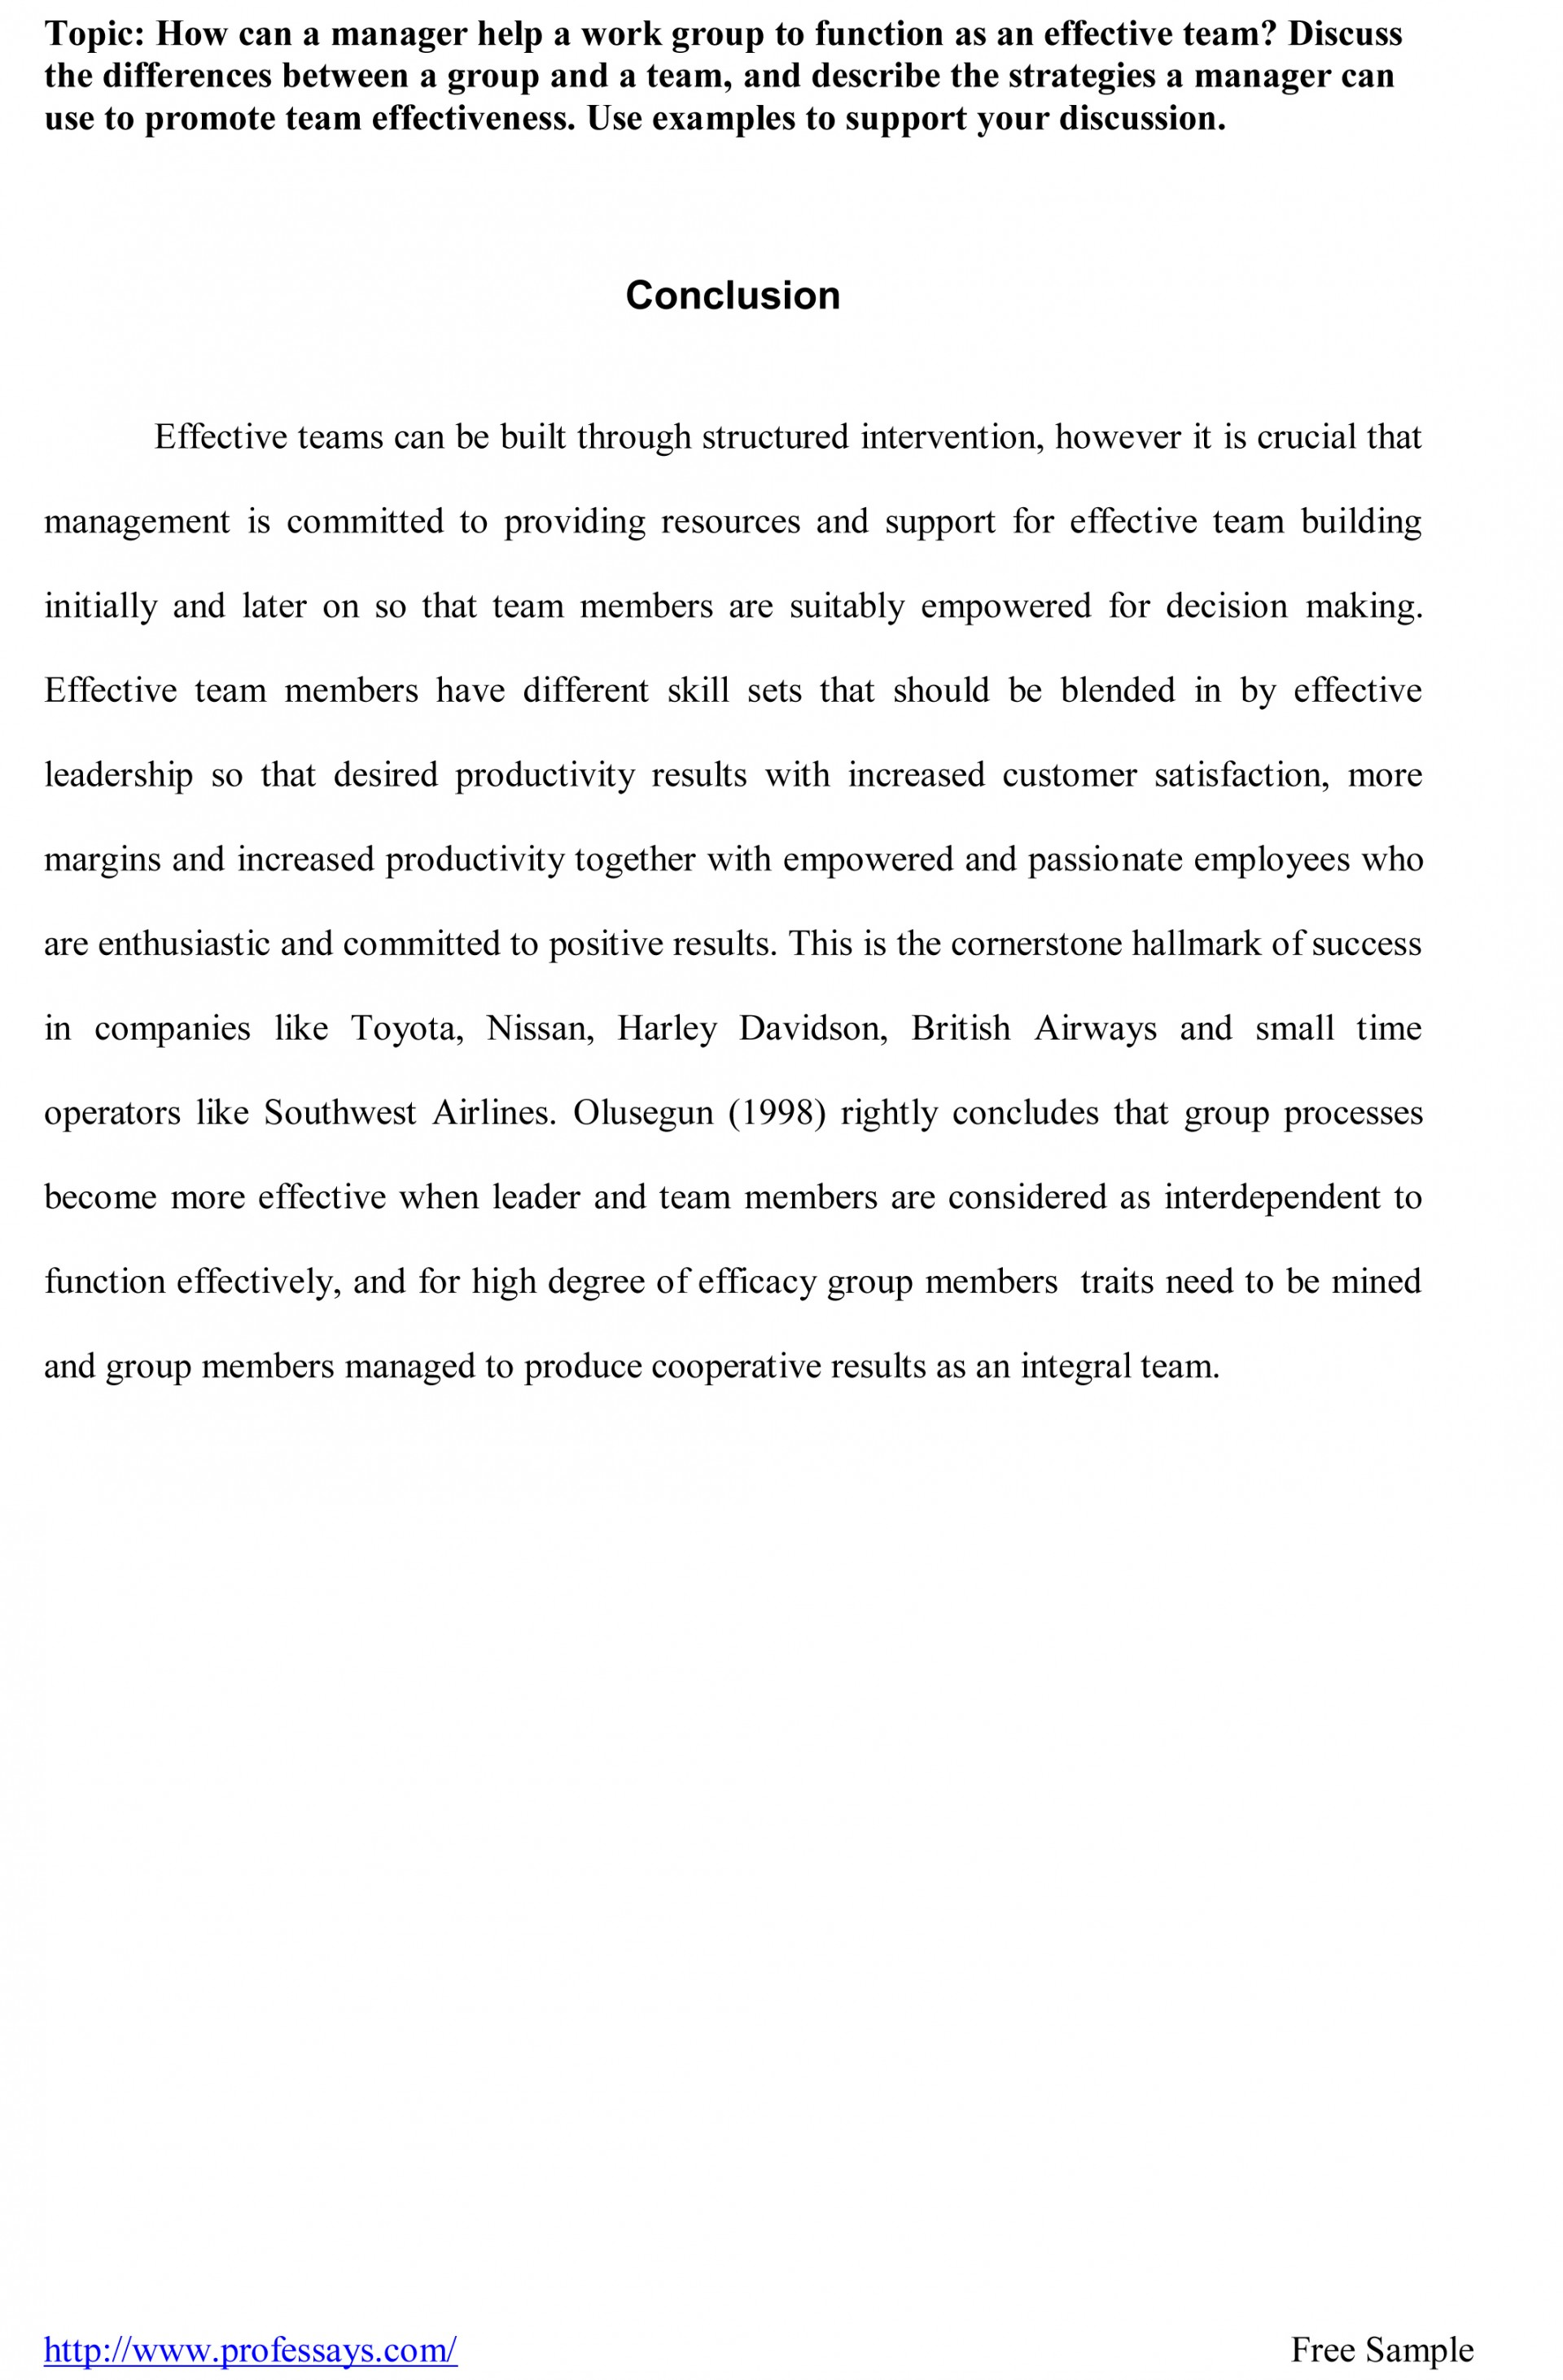 002 Conclusion Help Research Paper Sample For Amazing 1920